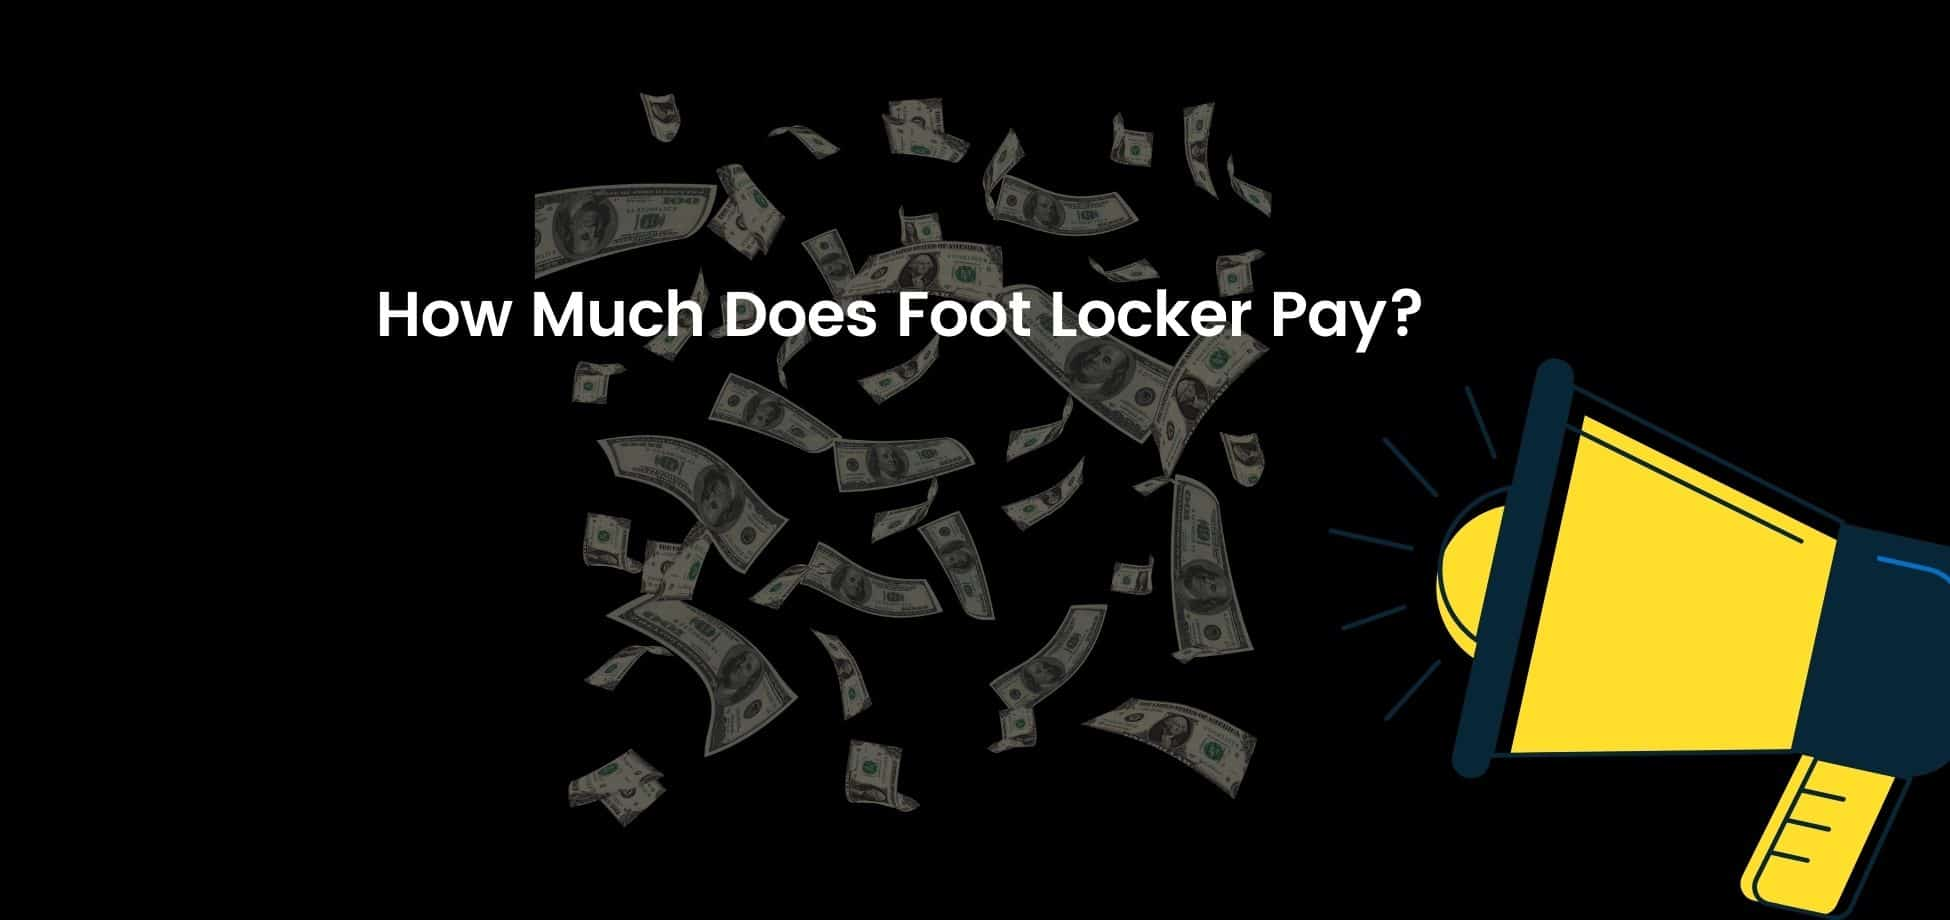 Foot Locker Salaries are pretty average for a sporting goods retail chain.